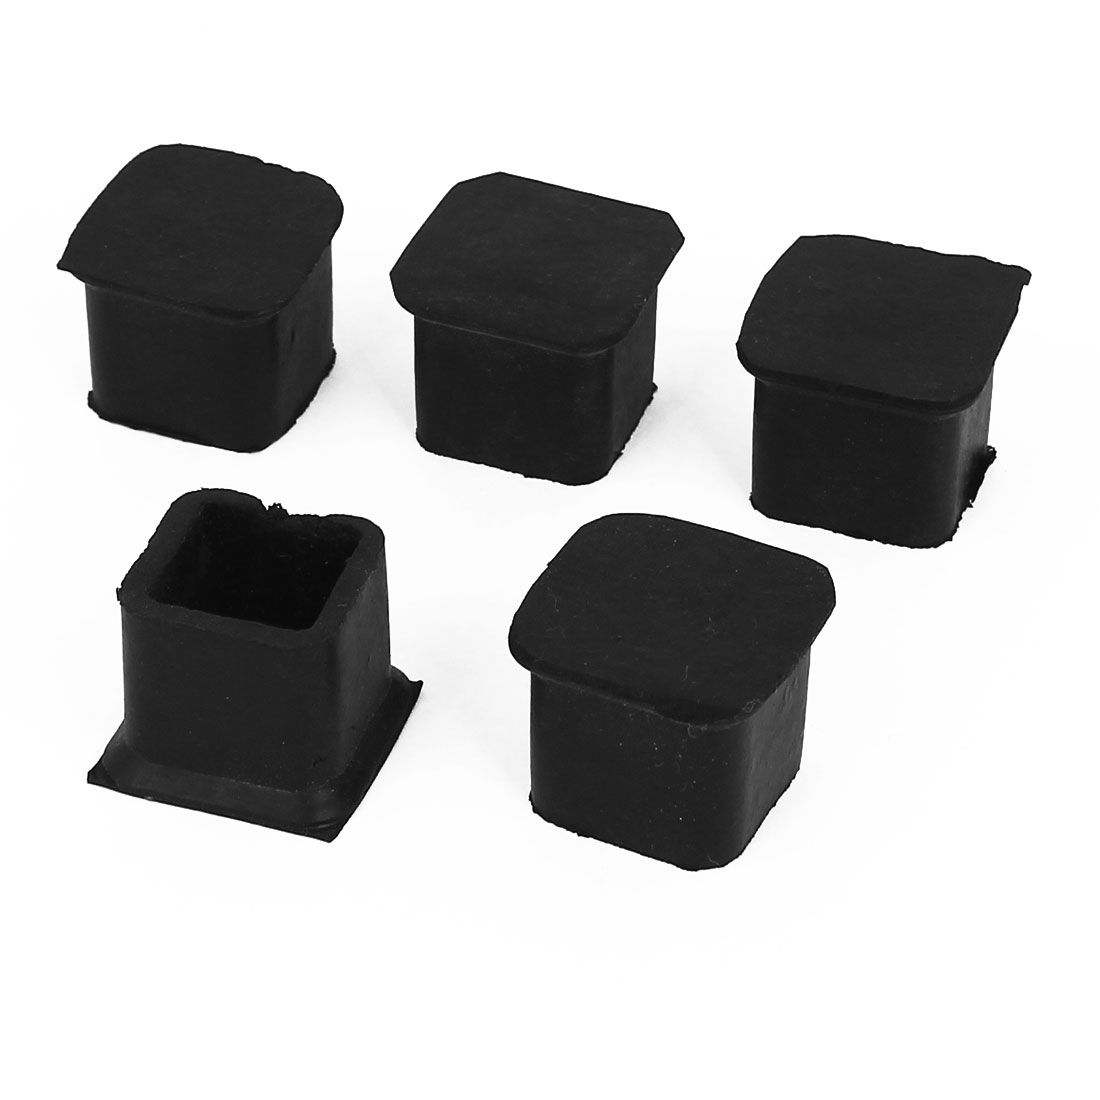 20mm x 20mm Square Rubber Furniture Machine Foot Cover Holder Protector 6 Pcs